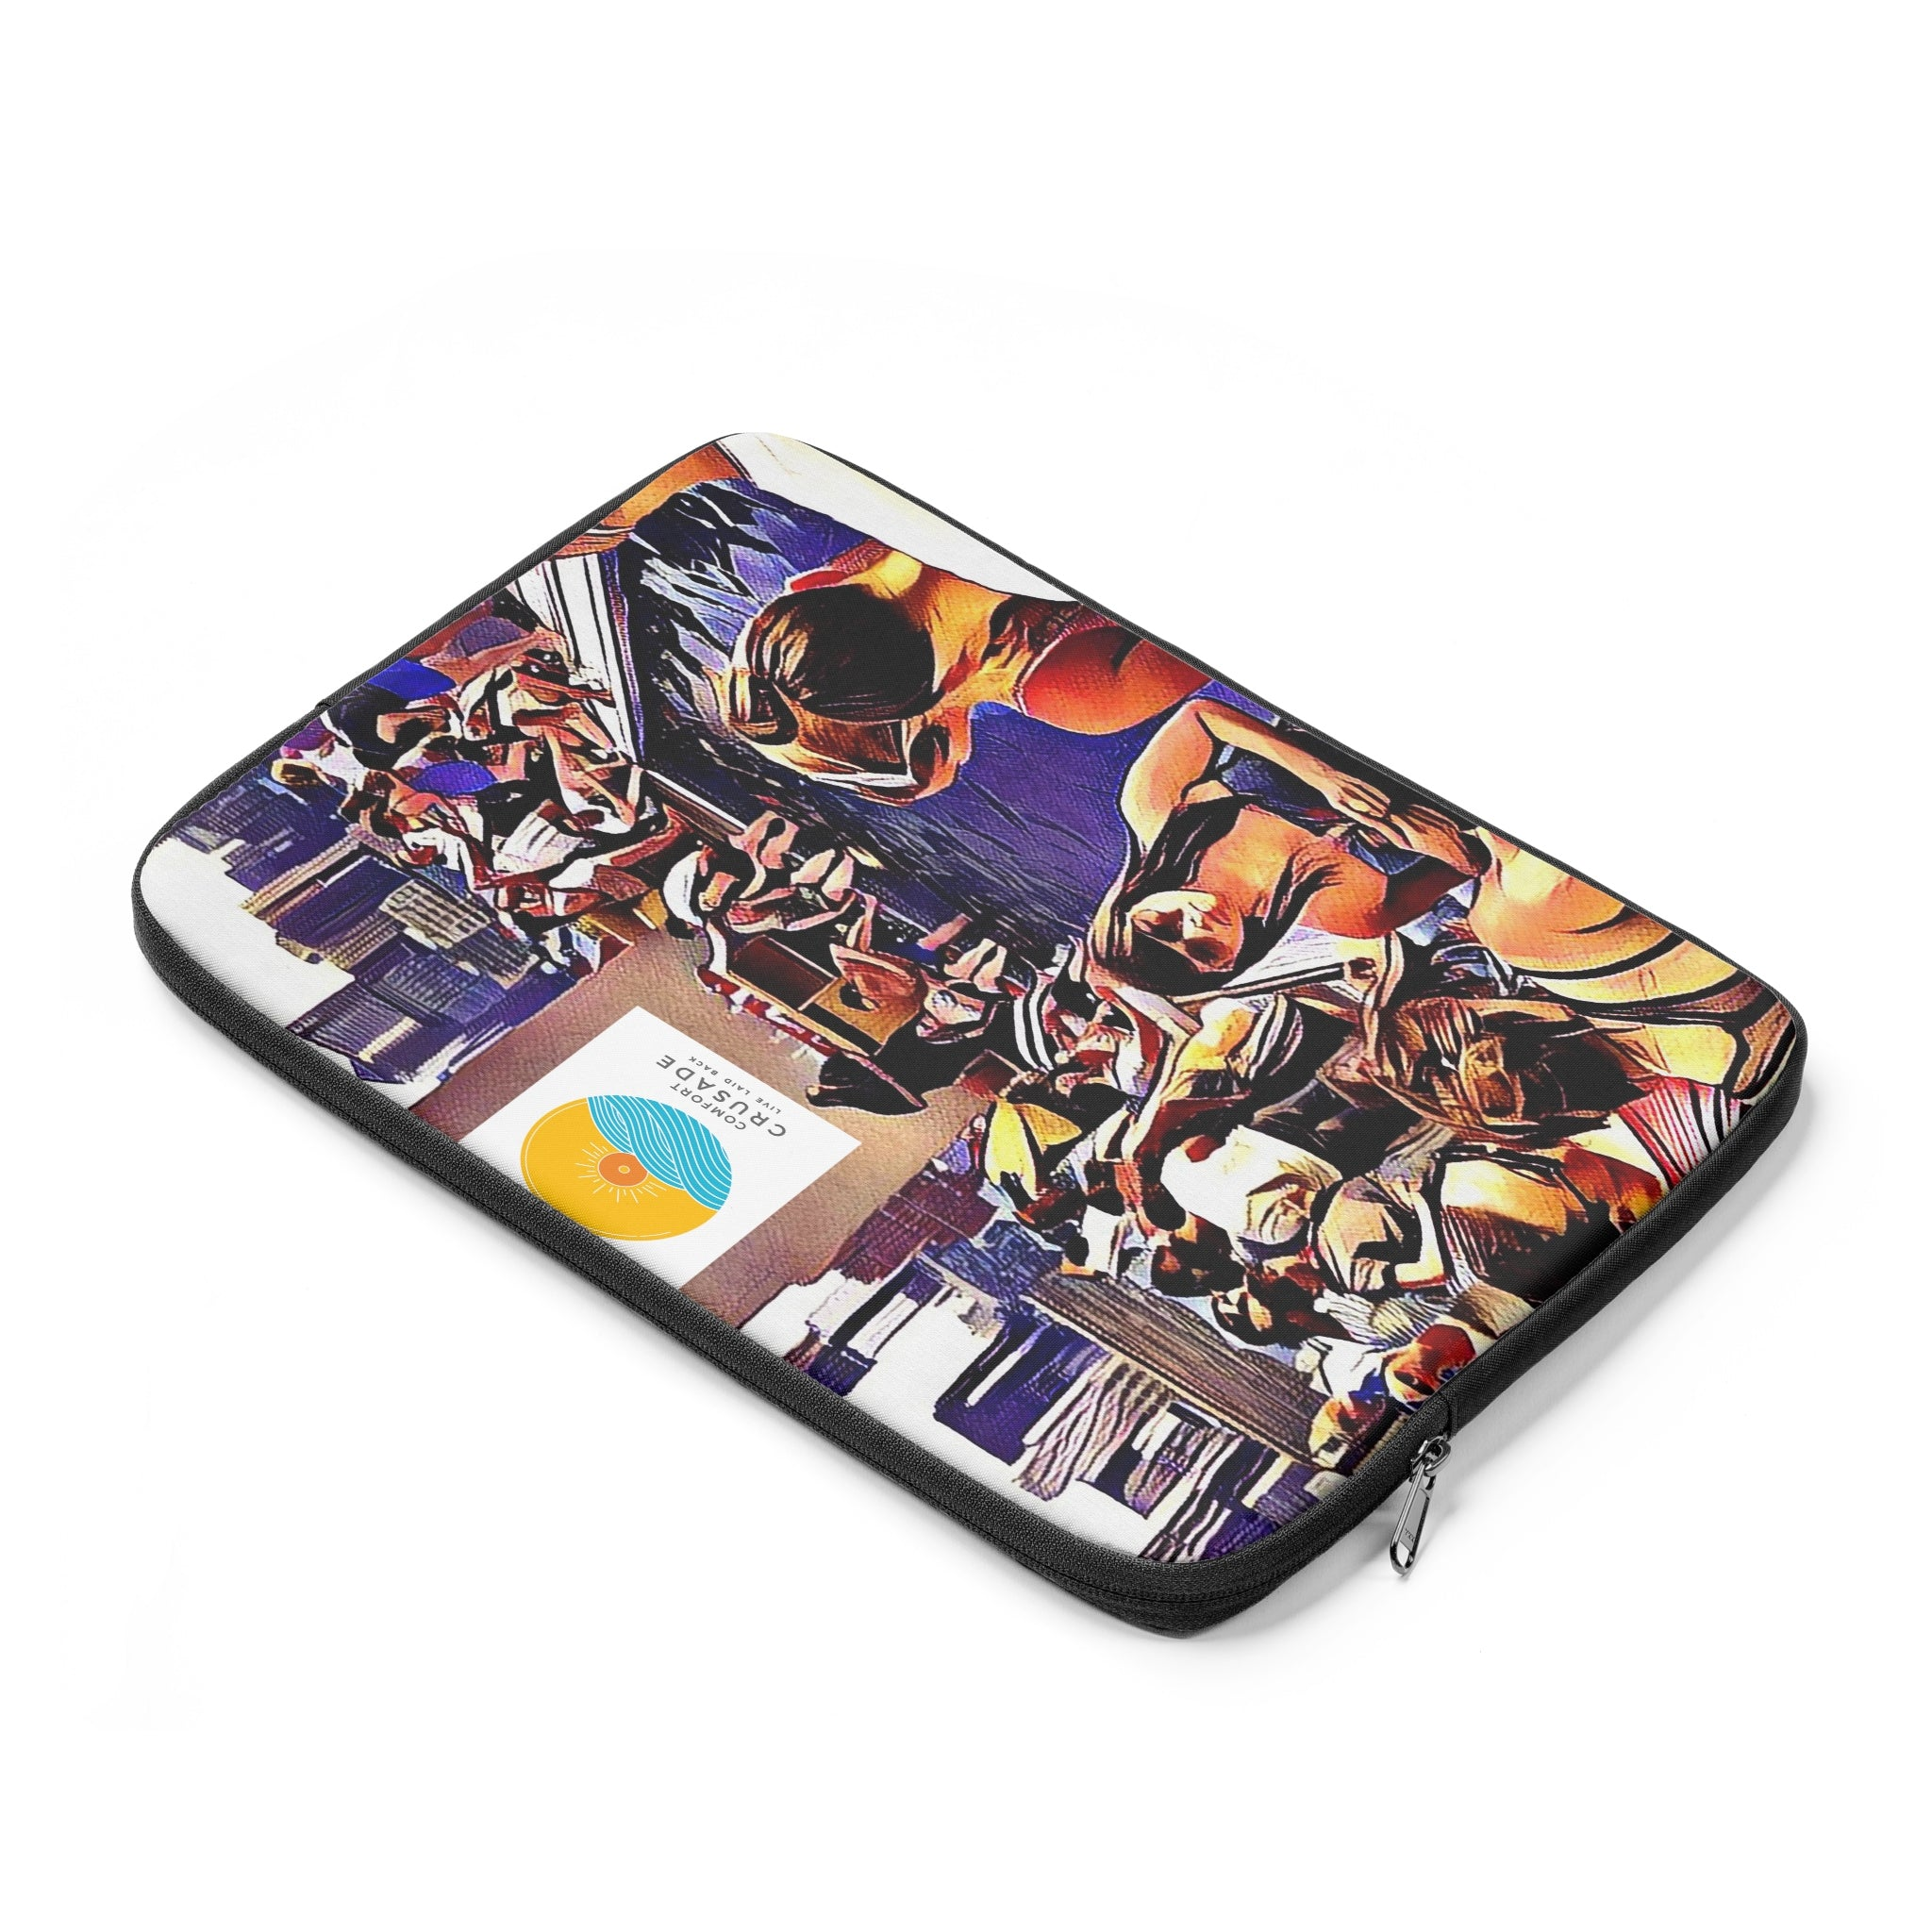 Comfort Crusade Rooftop Laptop Sleeve - The Comfort Crusade Shopping Lounge